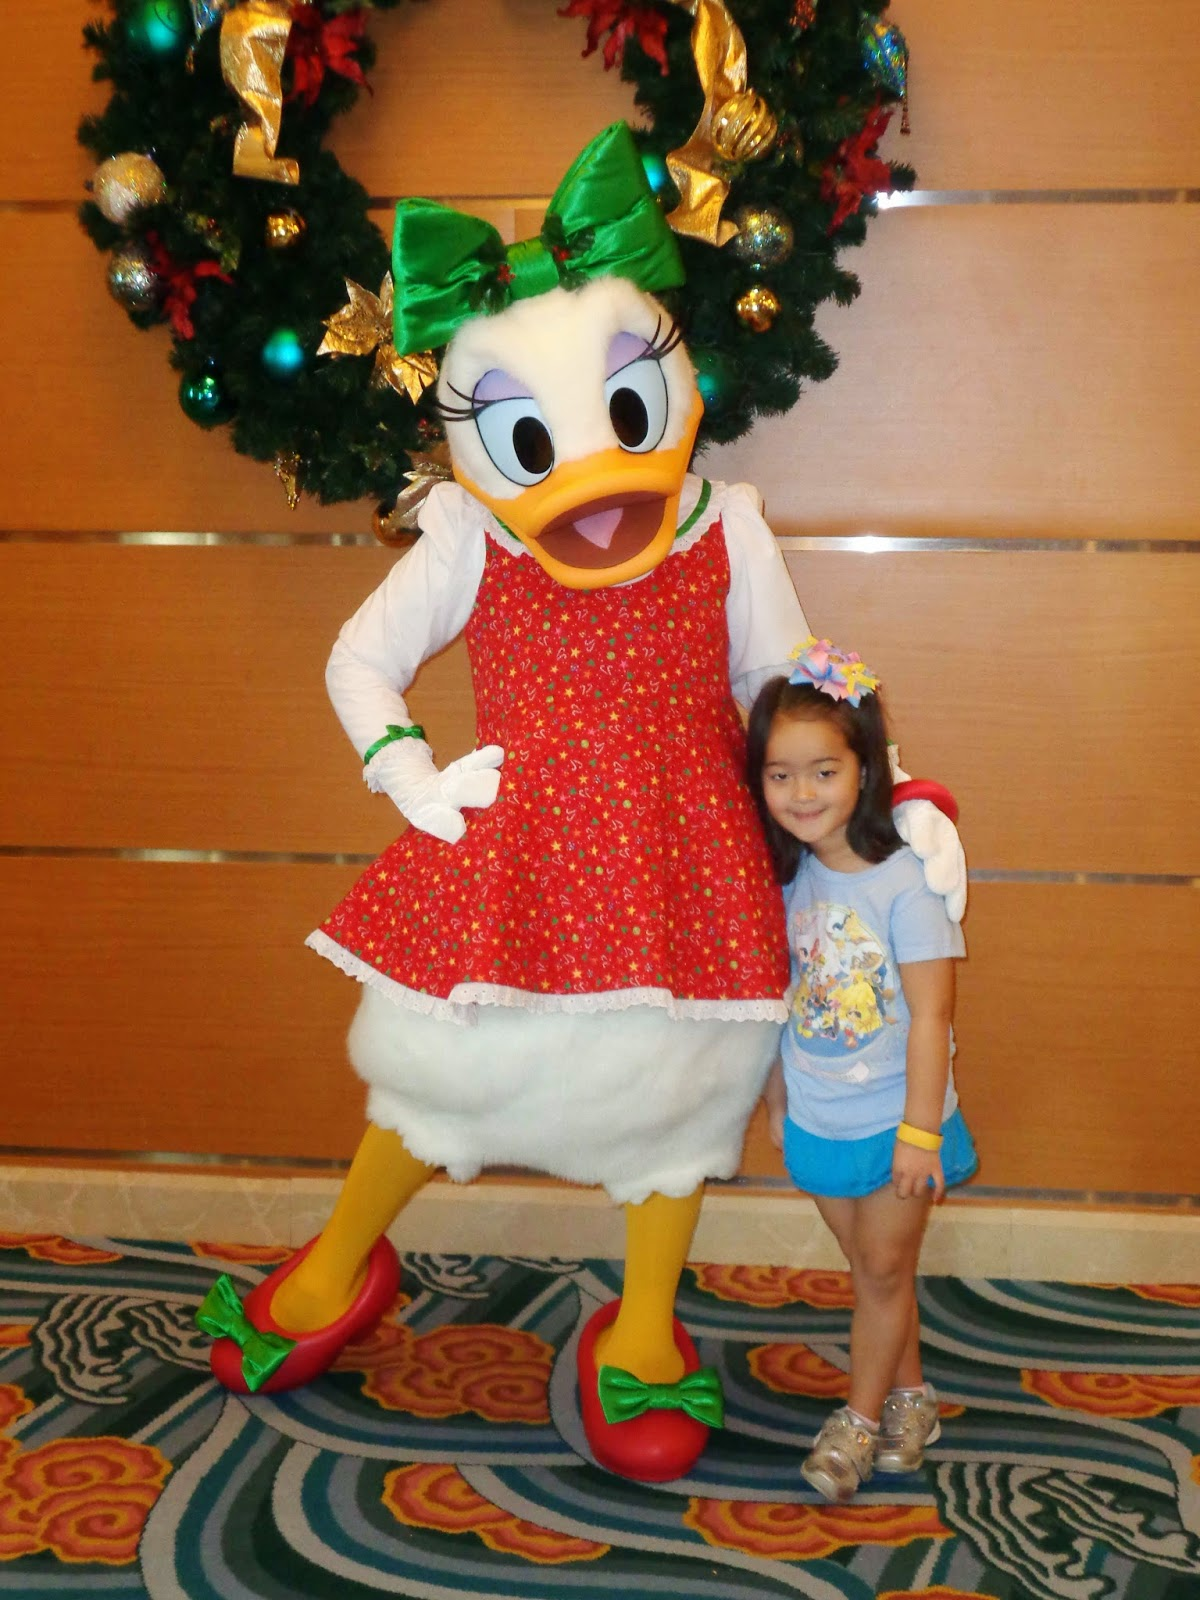 All things katy disney cruise line very merrytime cruise meet i got to meet tiana too baby doll maggie wanted to get her picture taken with tiana too kristyandbryce Images